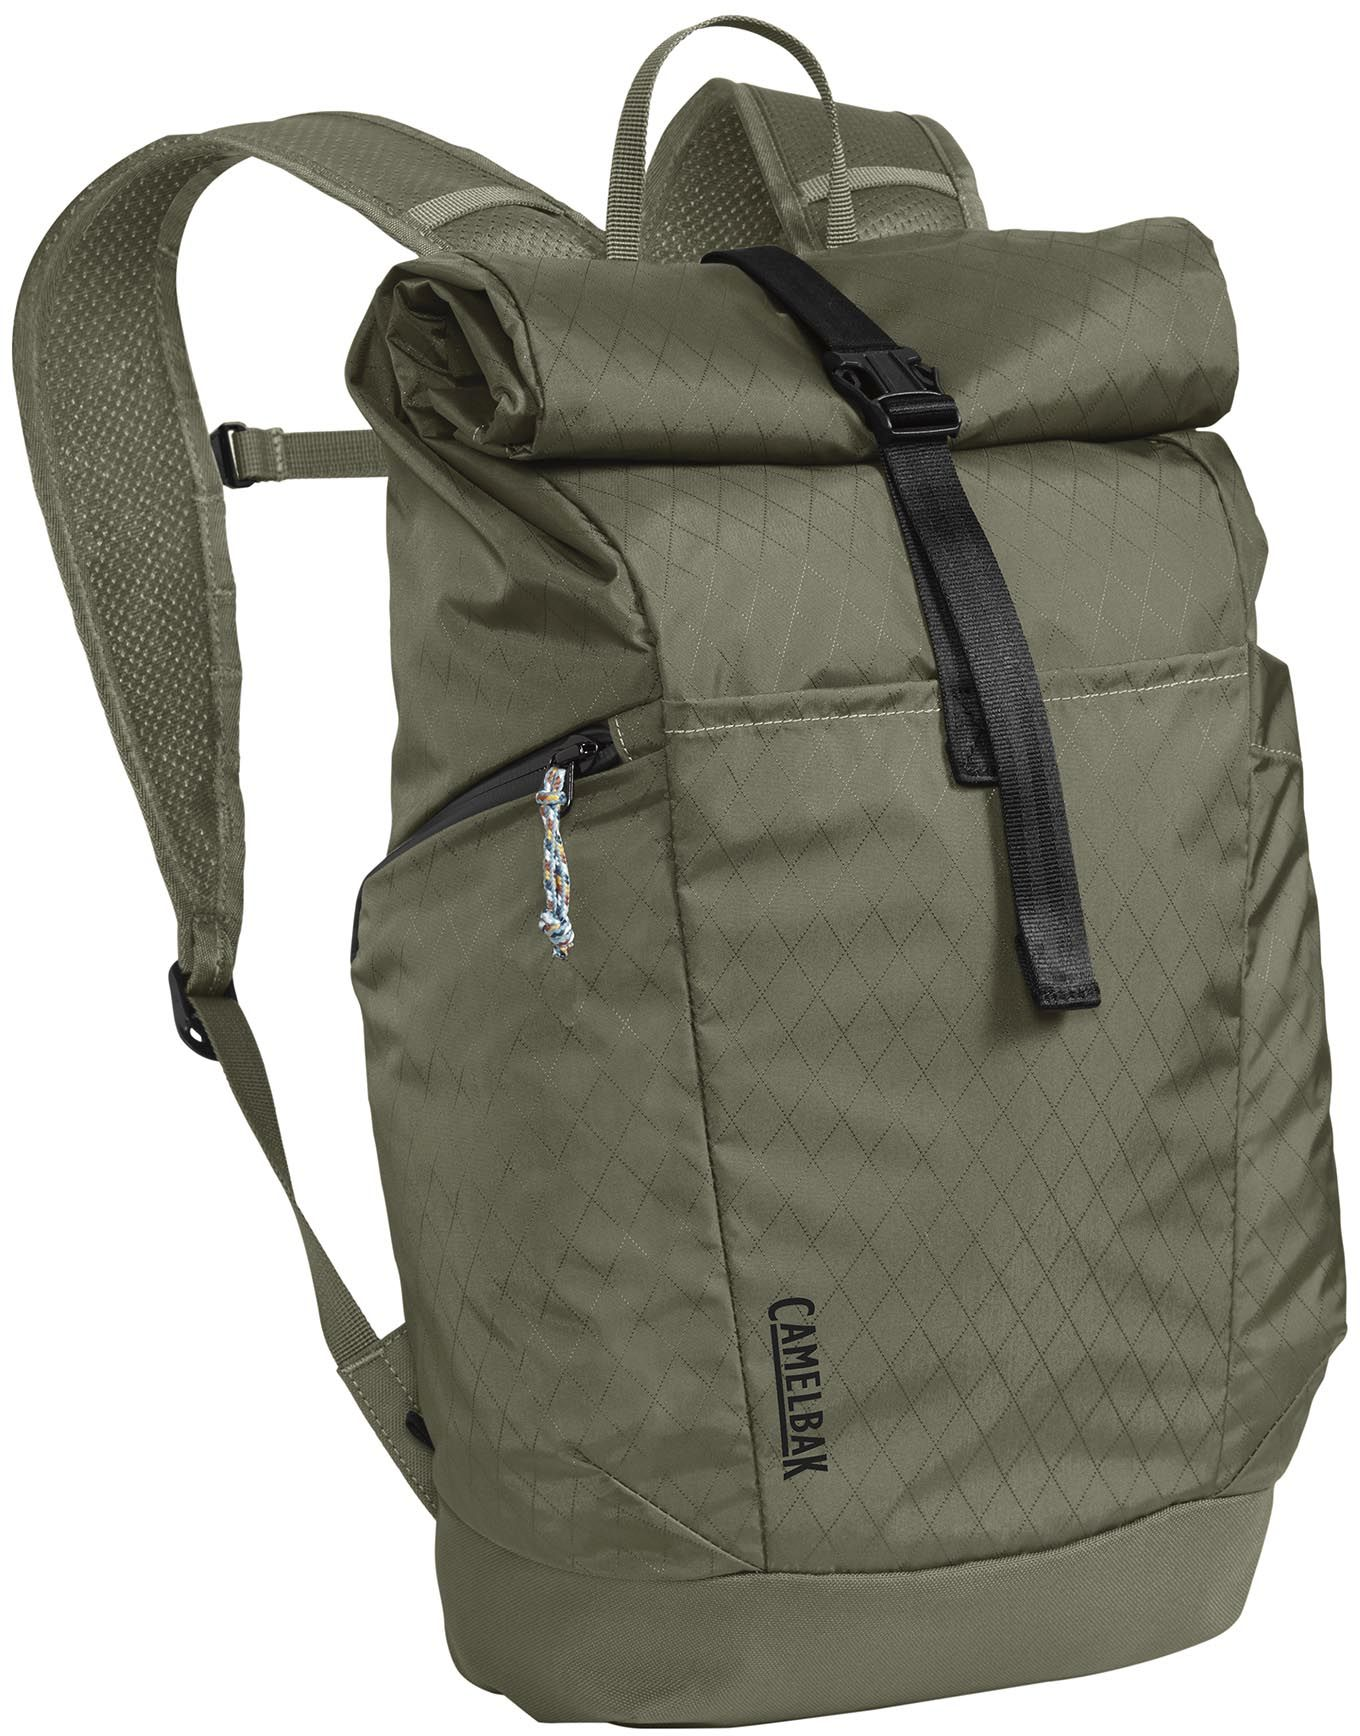 Camelbak Pivot Roll Top Pack - Dusty Olive uni